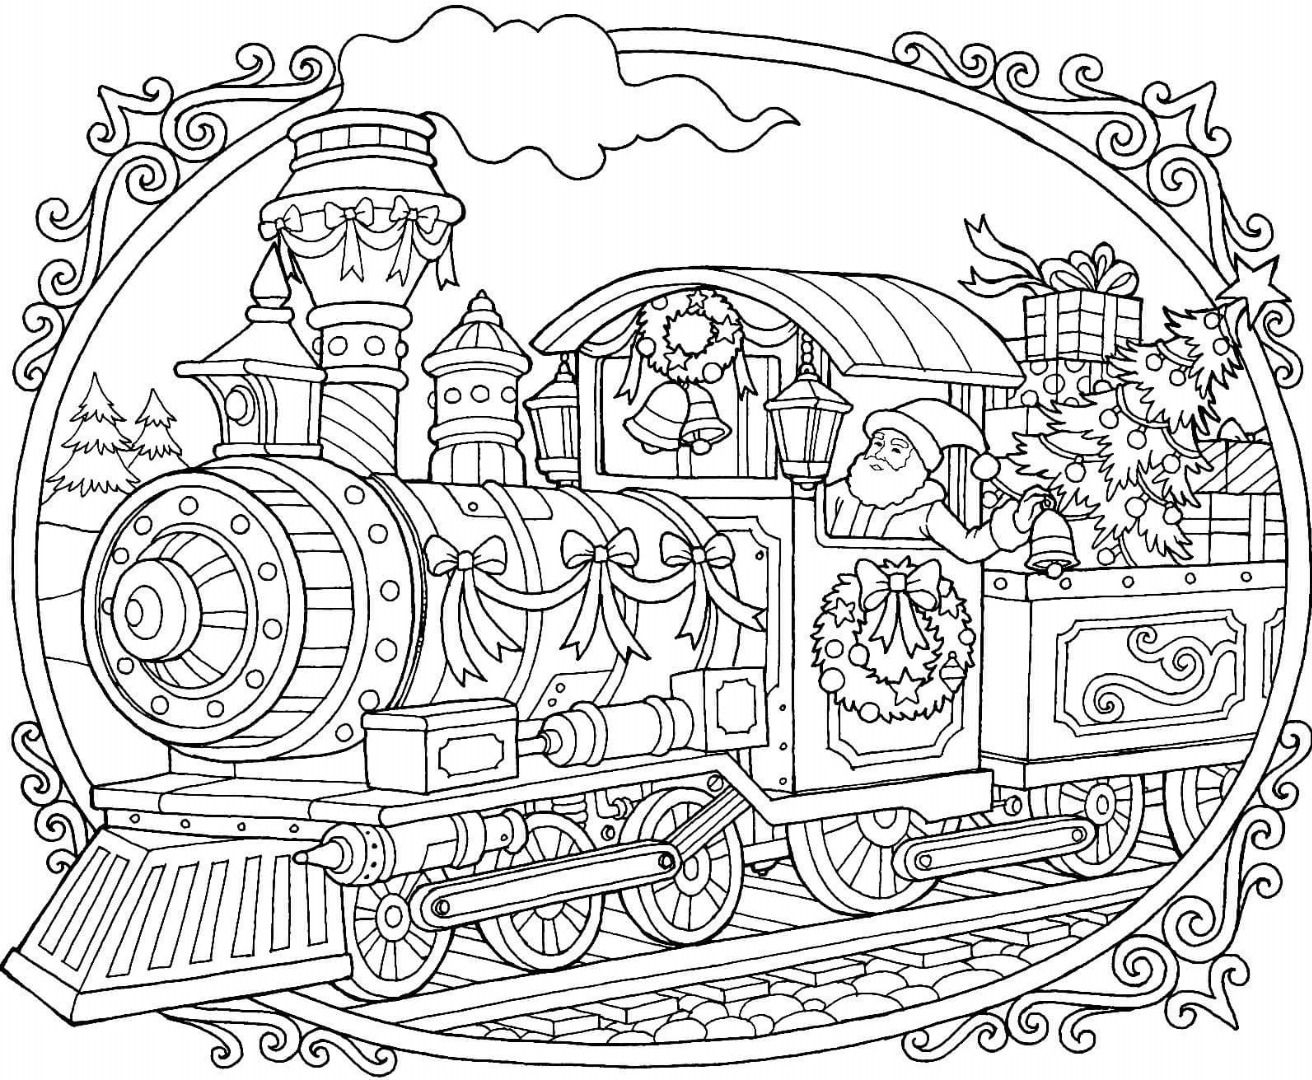 Mary engelbreit printable coloring pages ~ Mary Engelbreit Coloring Pages Printable | Free Coloring ...